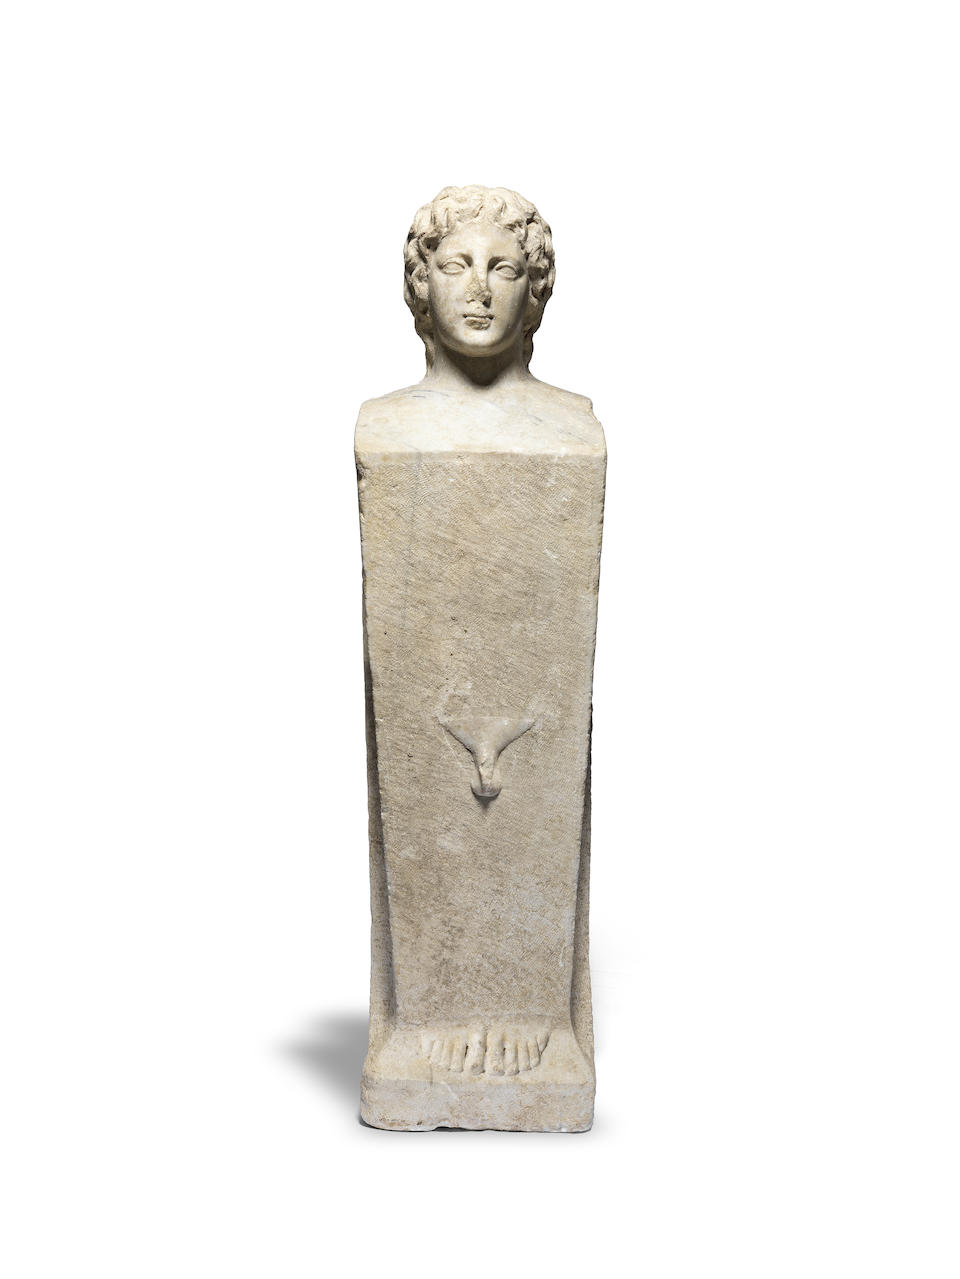 A Roman marble herm with the head of Alexander the Great